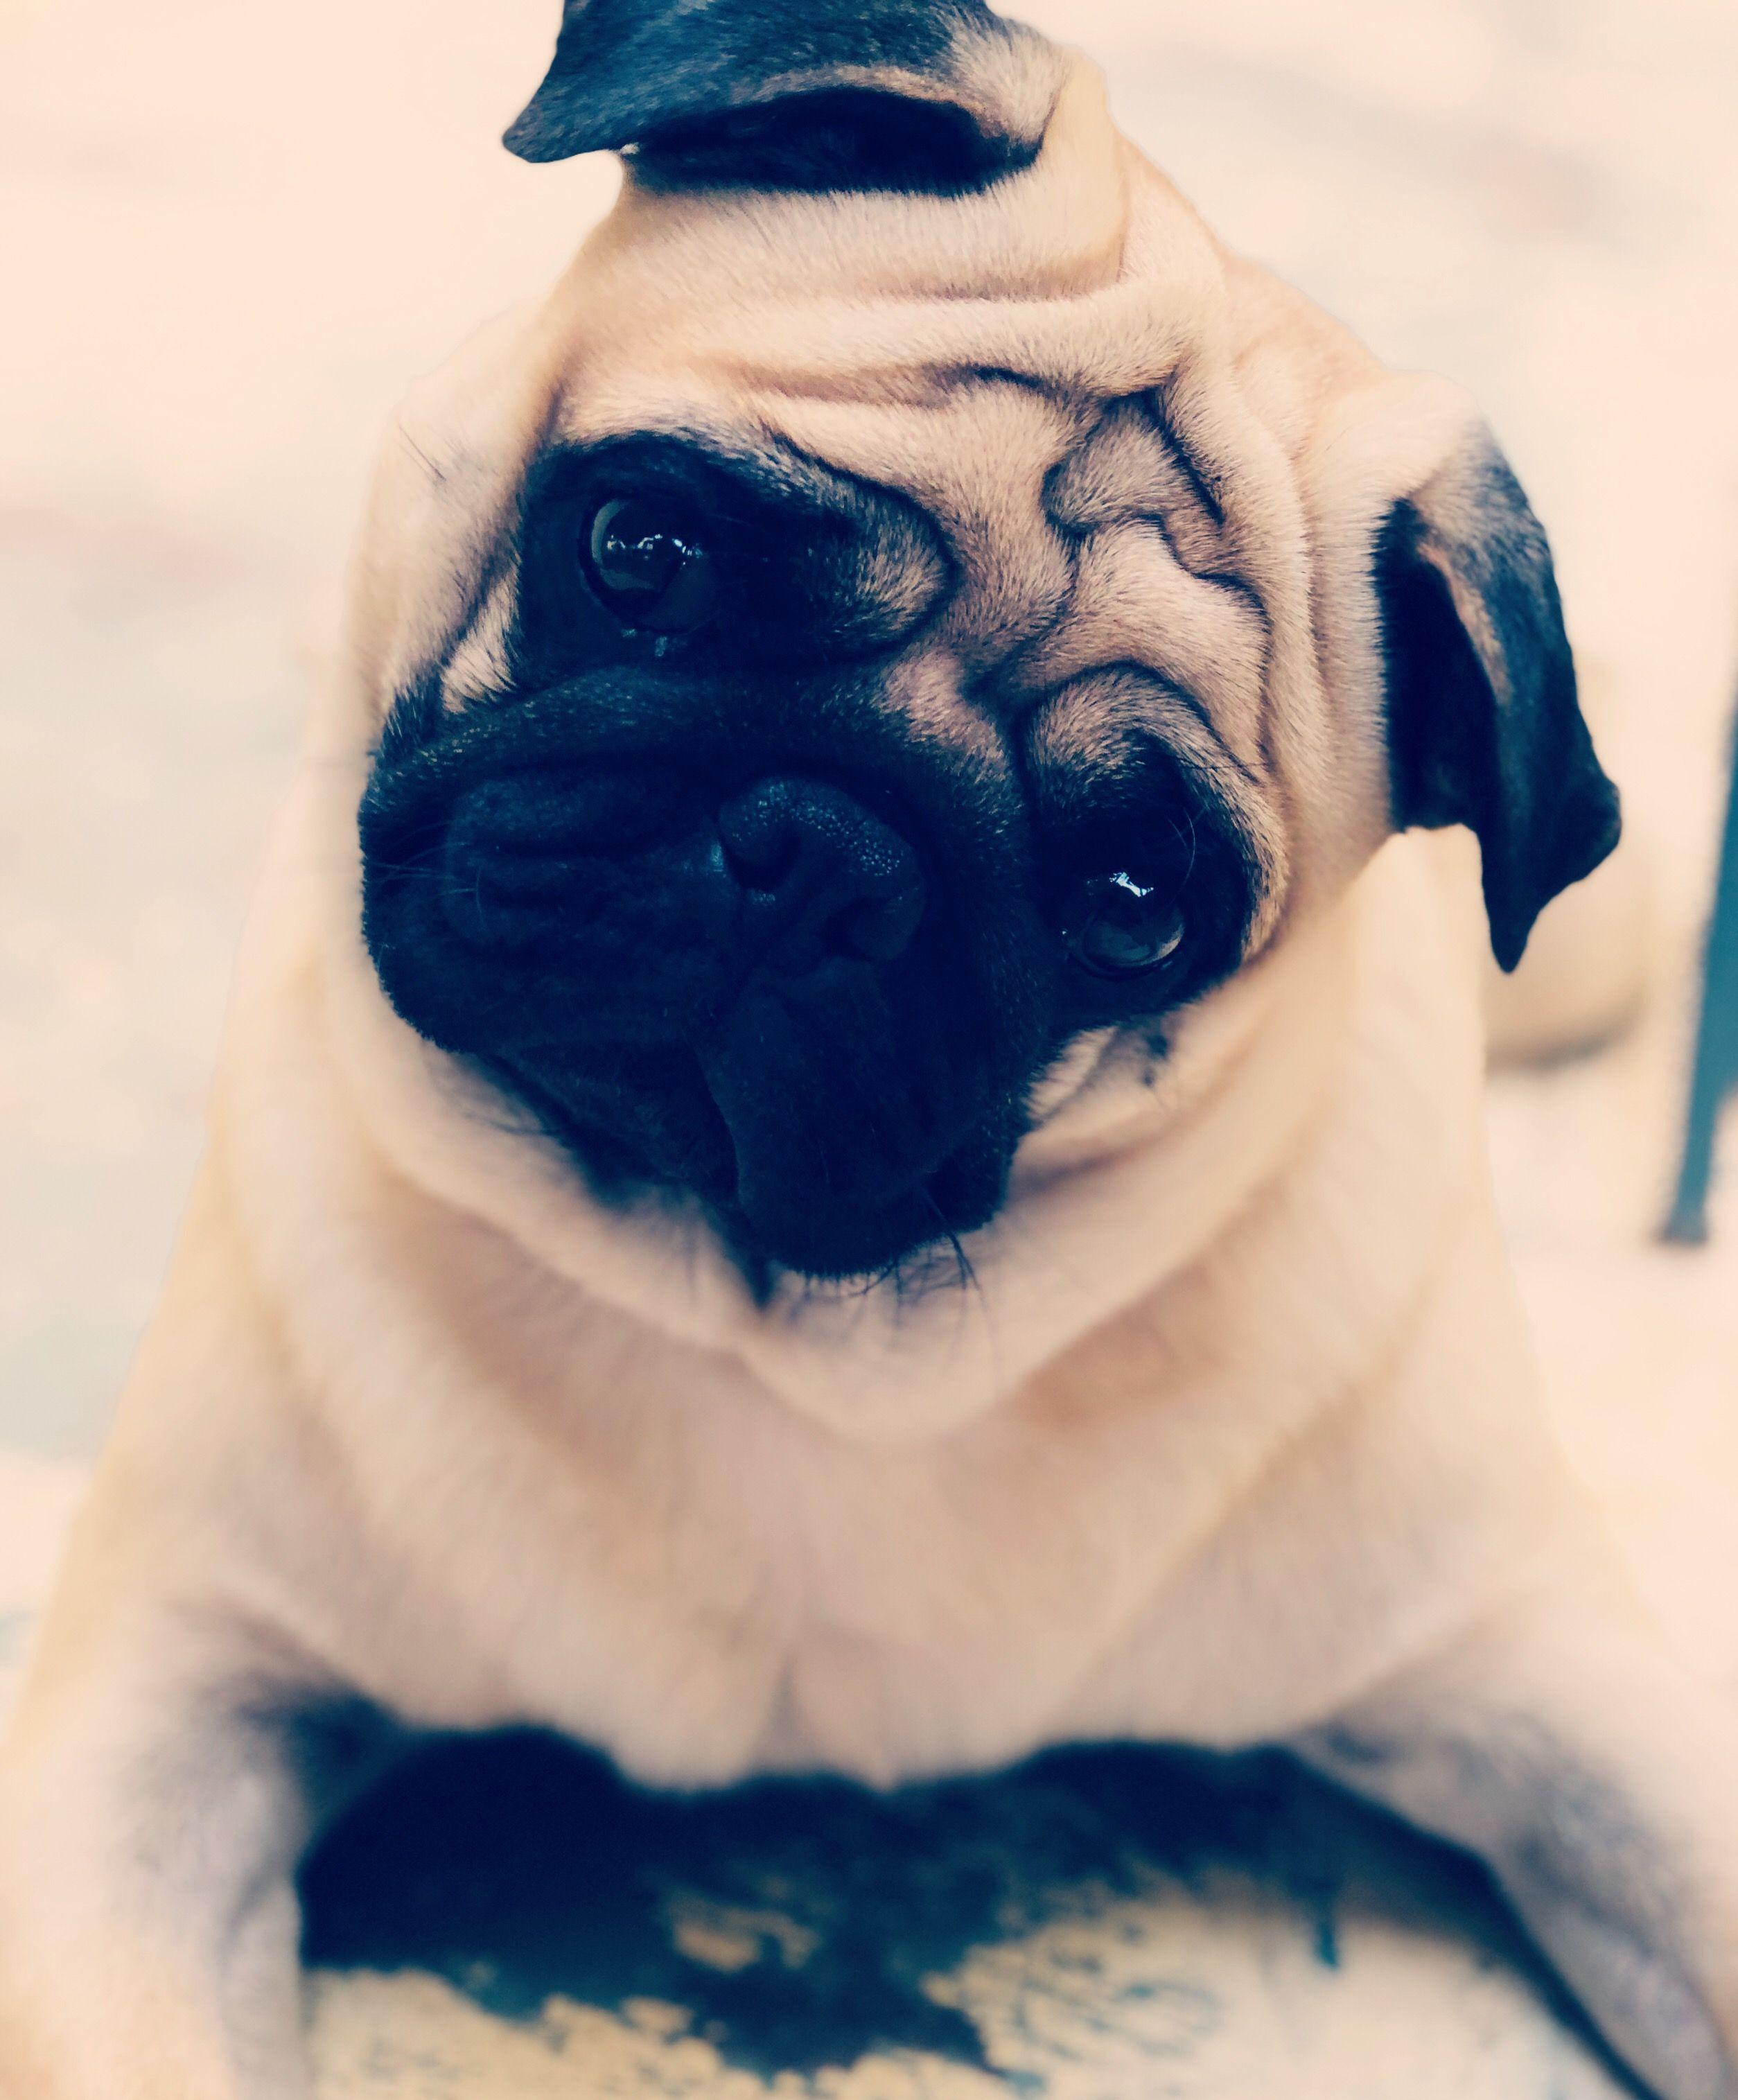 Pin By Cooljay On Pogo The Pug Cute Small Dogs Cute Pugs Dog Love